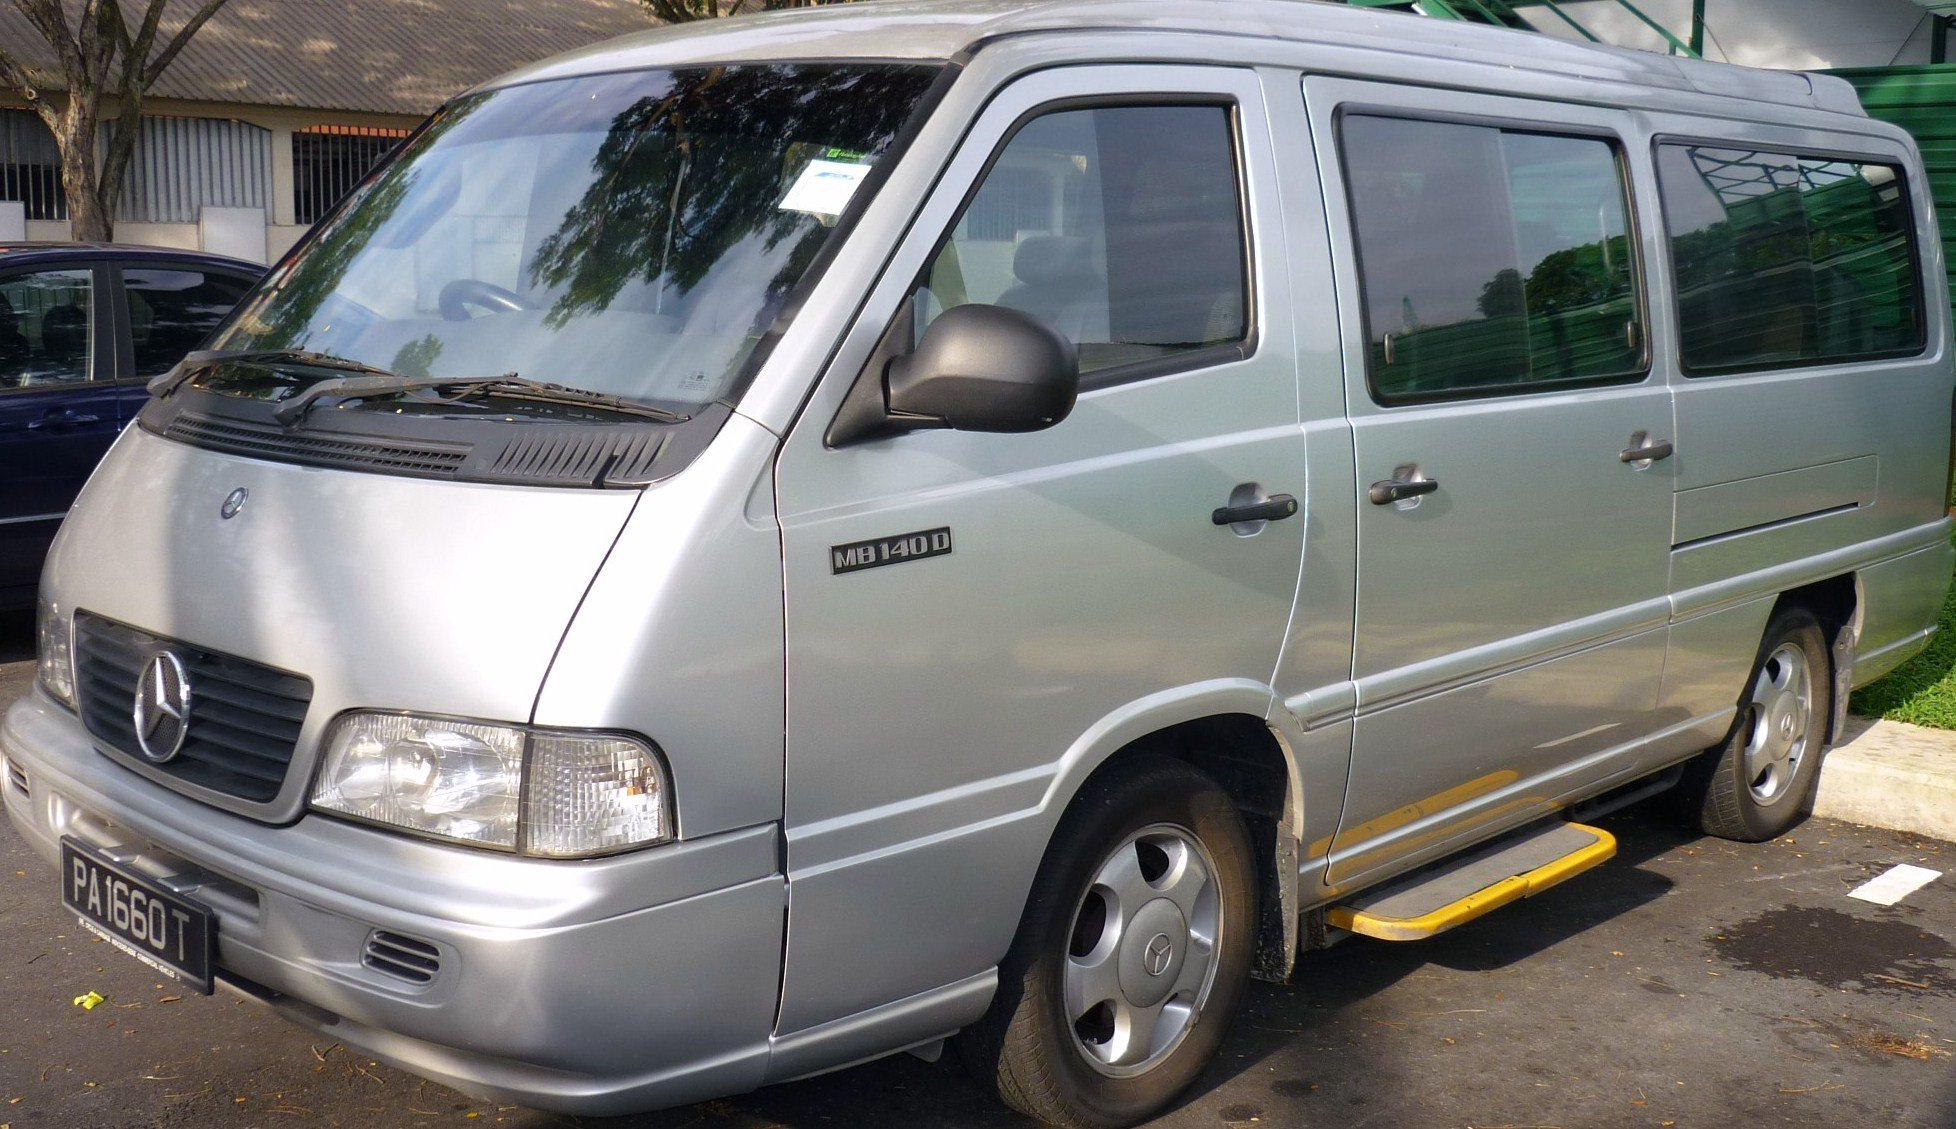 SERVICES: Mini Bus for Charter (12 Seater)